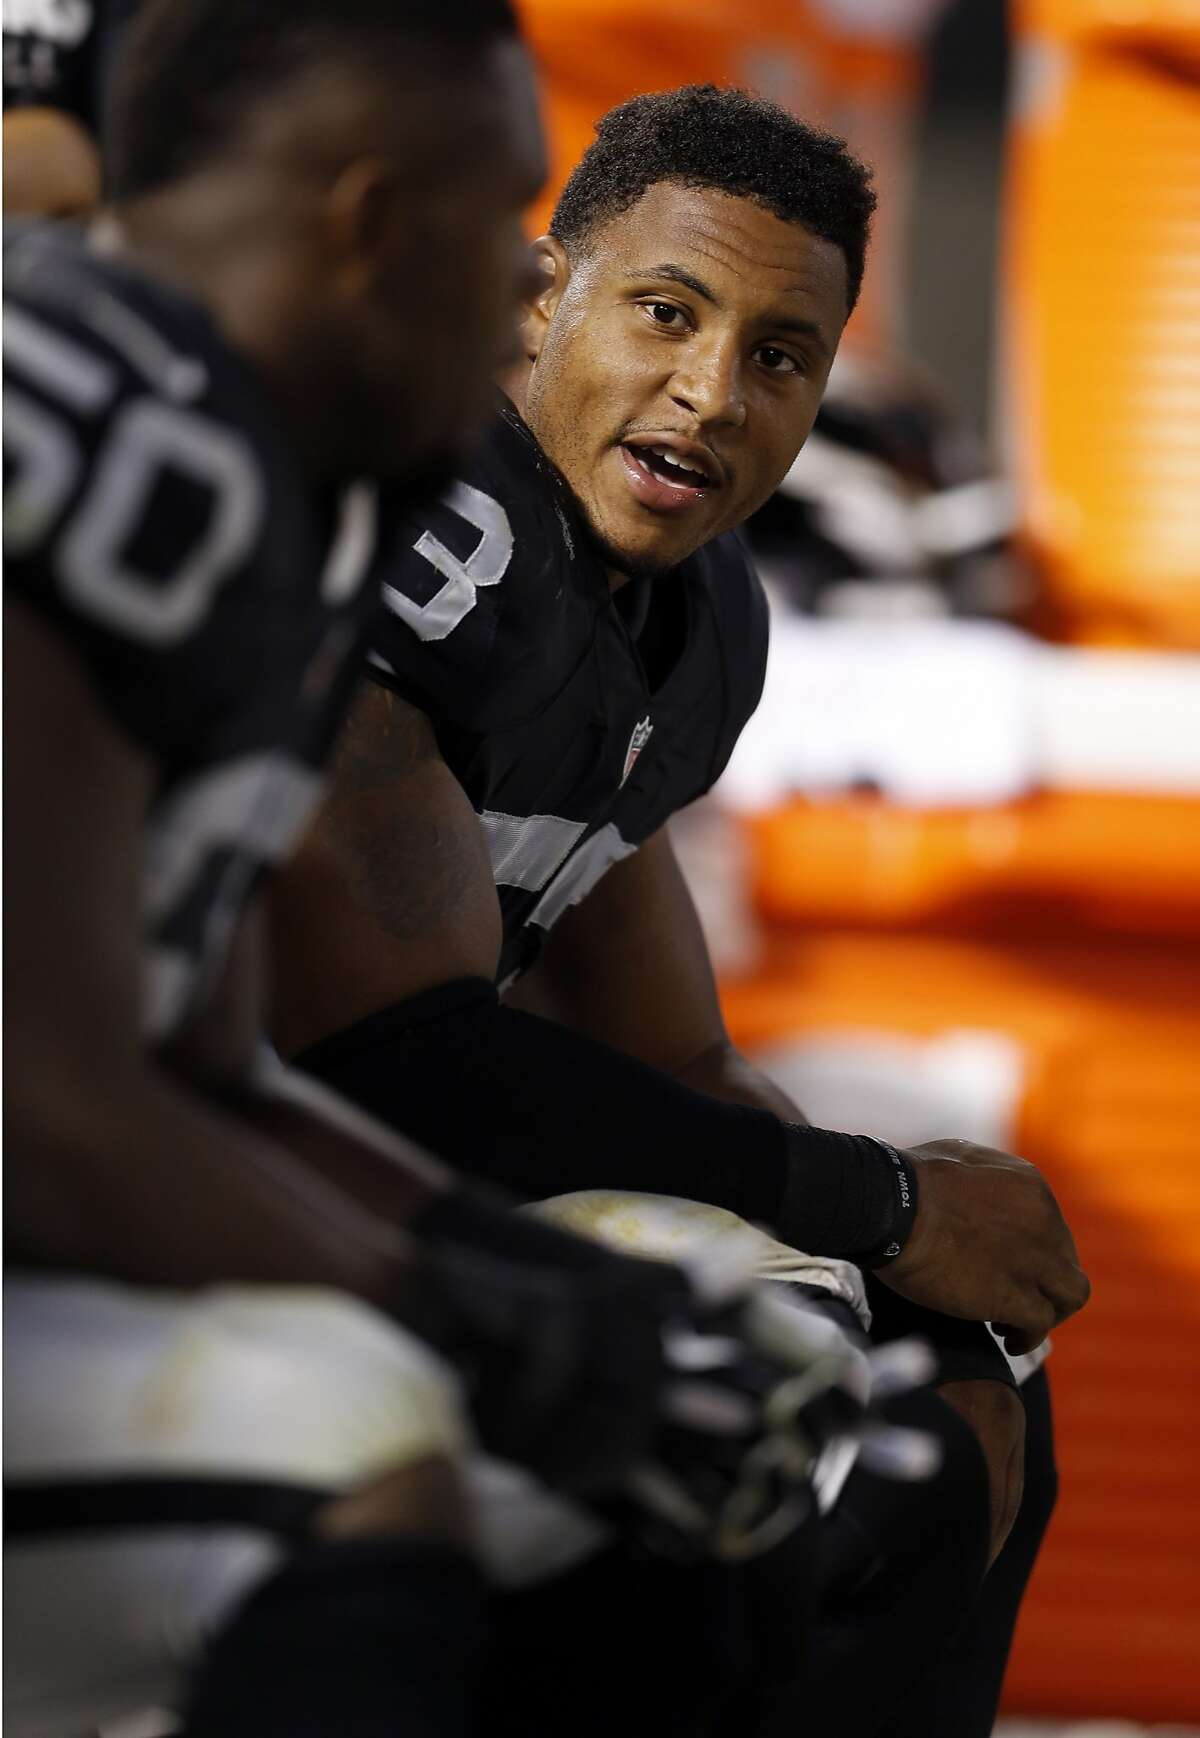 Oakland Raiders' Malcolm Smith in 4th quarter of 30-23 loss to Arizona Cardinals in preseason game at O.co Coliseum in Oakland, Calif., on Sunday, Aug. 30, 2015.